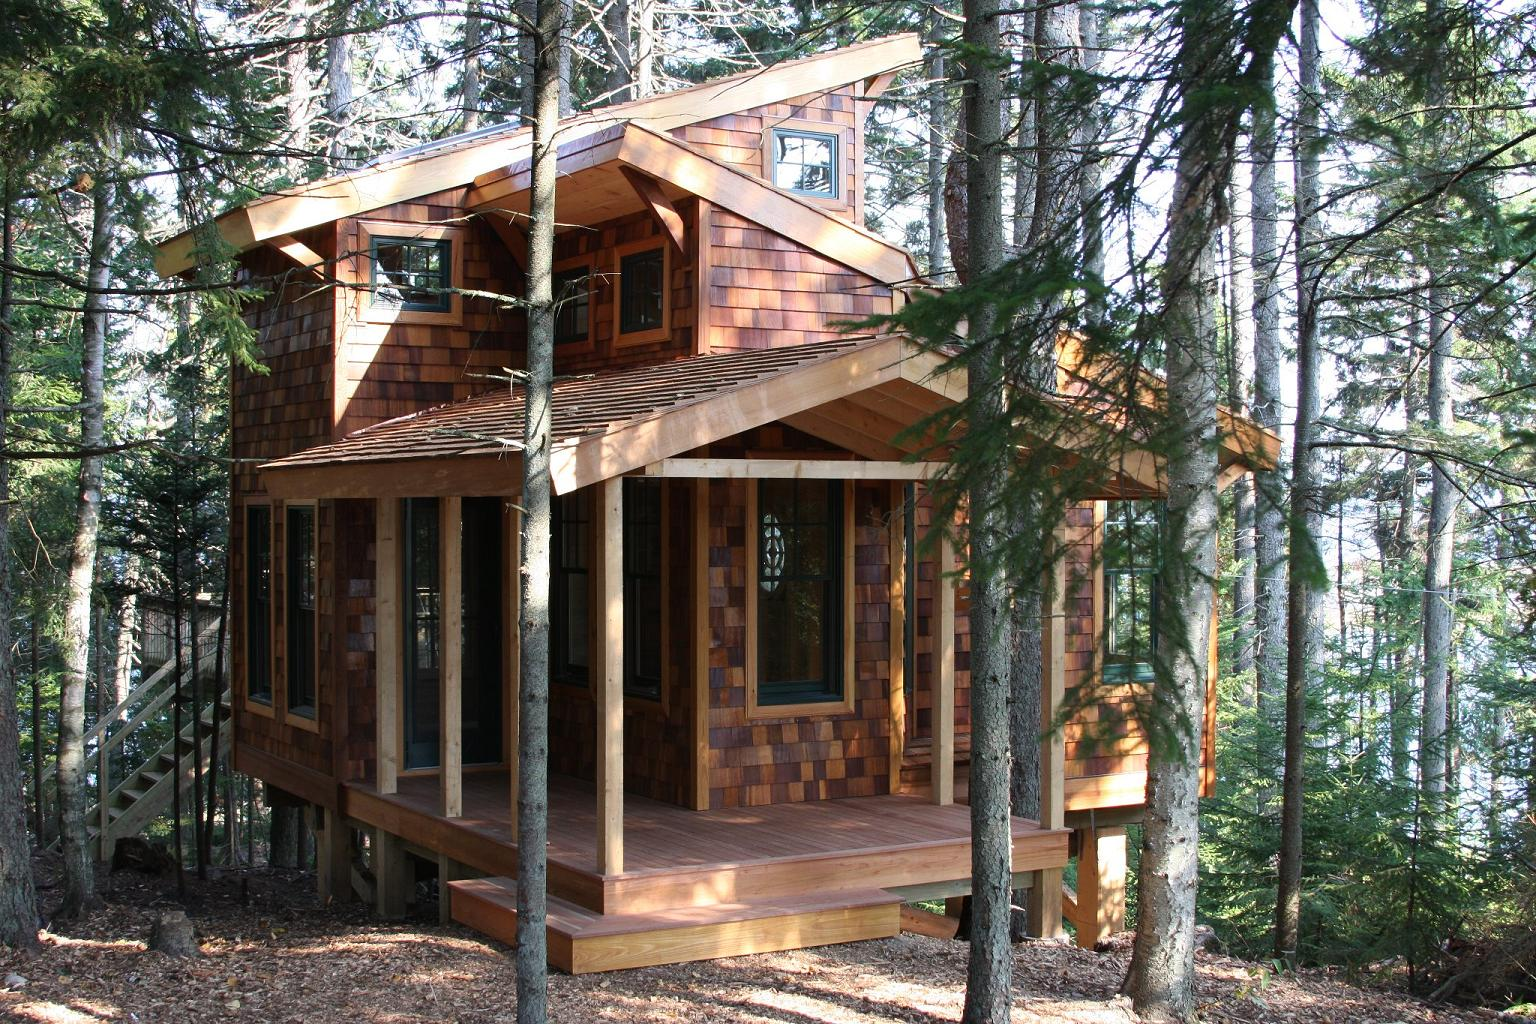 Playhouse treehouse designs furnitureplans for Small tree house